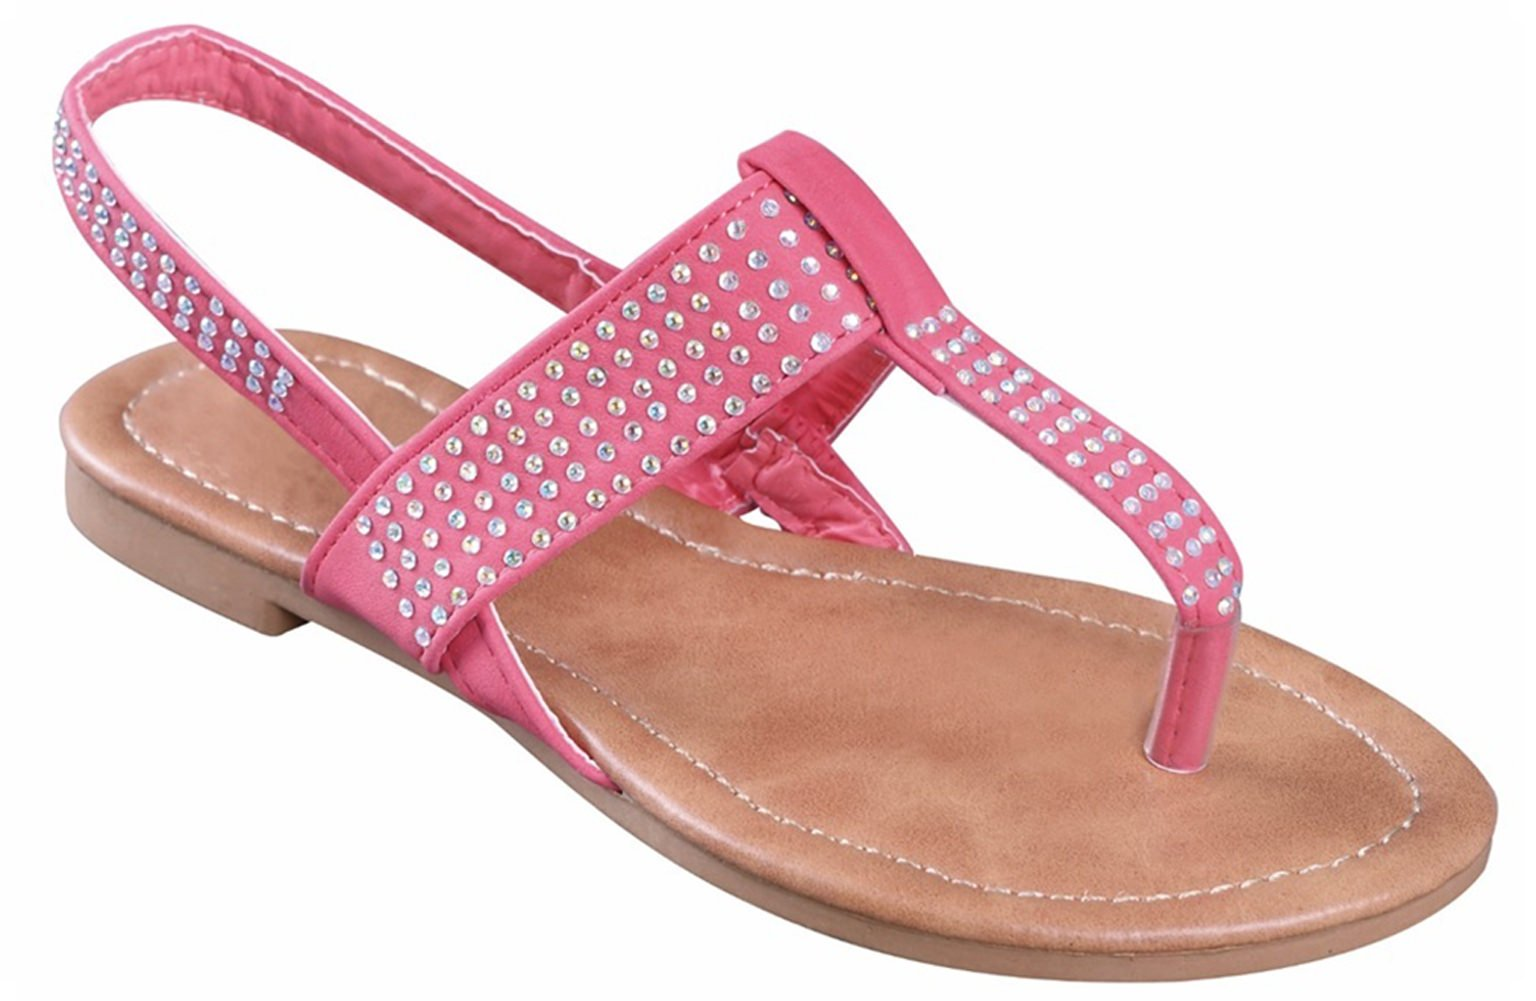 Best Coral Vegan Leather Slingback T Strap Sandal Cute Sweet Back to School Uniform Open Toe Easy Slipon Rhinestone Light Cushioned Dress Wedge Thong Summer Flat for Little Kid Girl (Size 13, Coral)